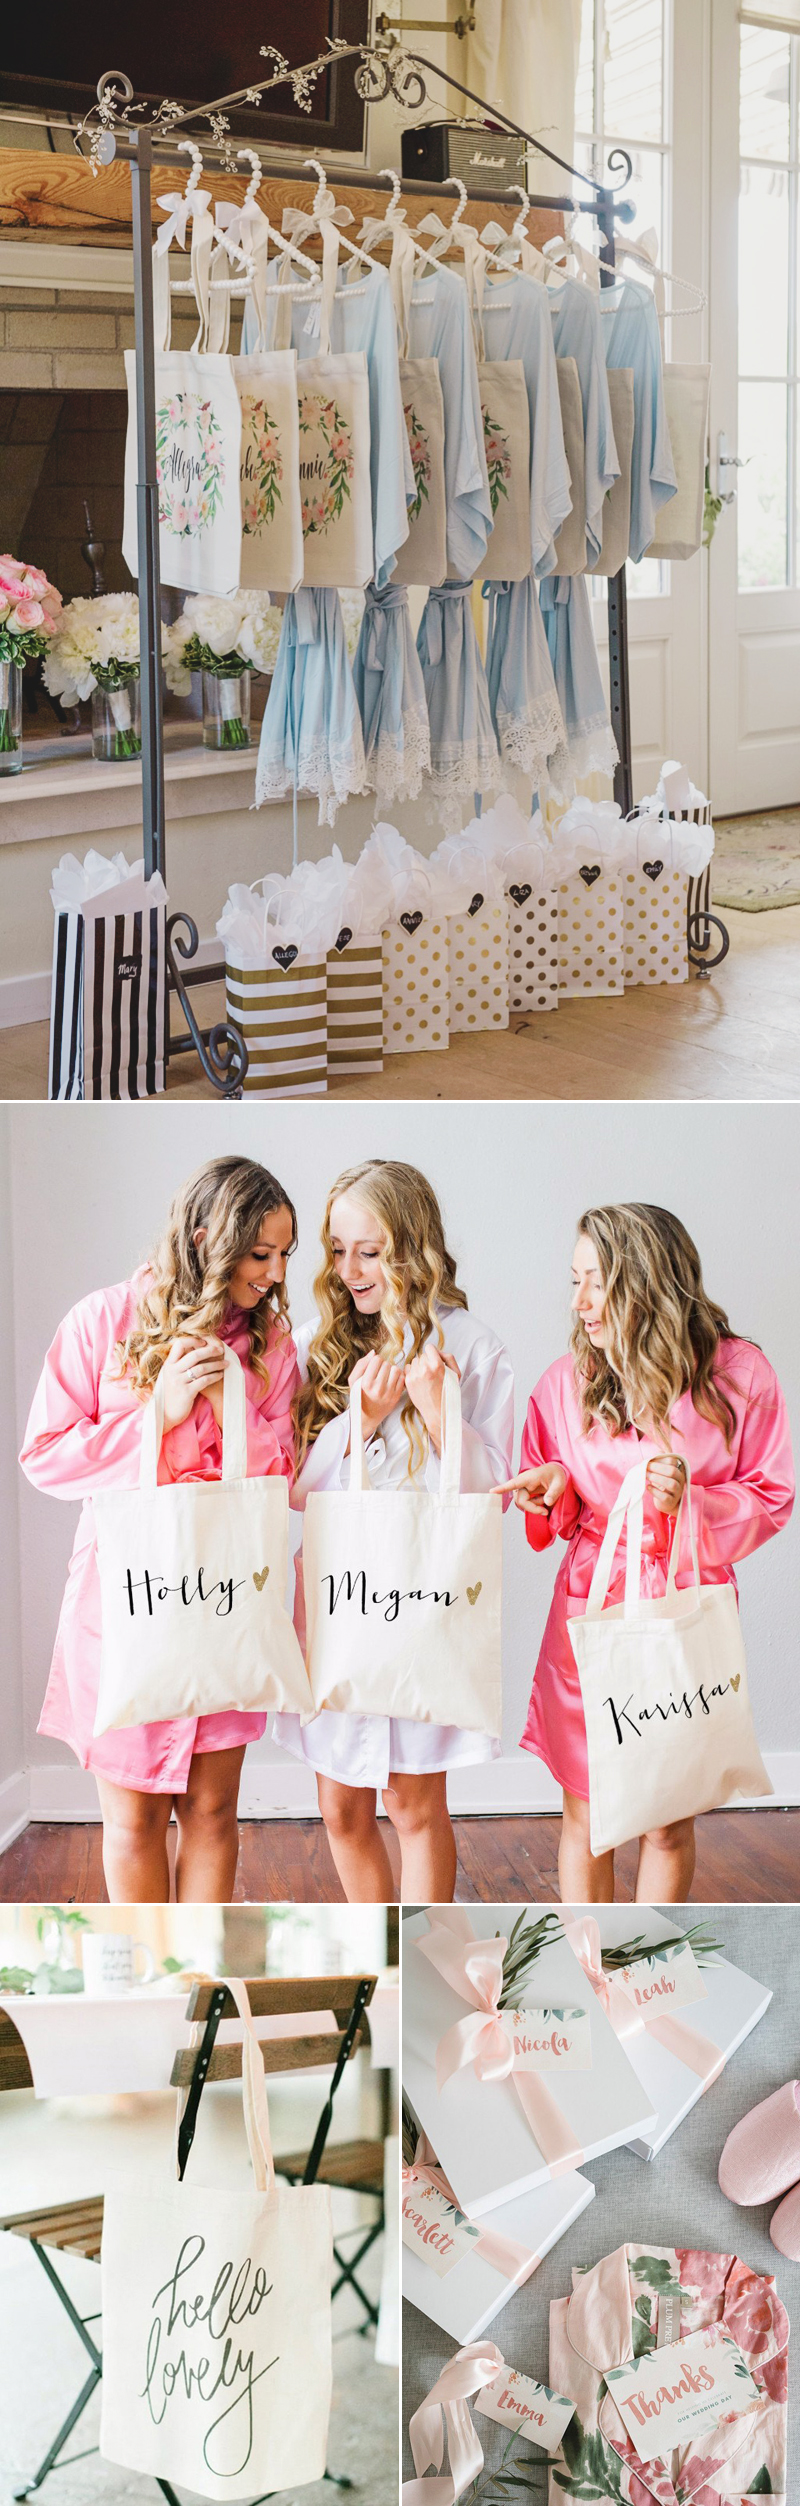 bridesmaid-get-ready03-giftsandcards